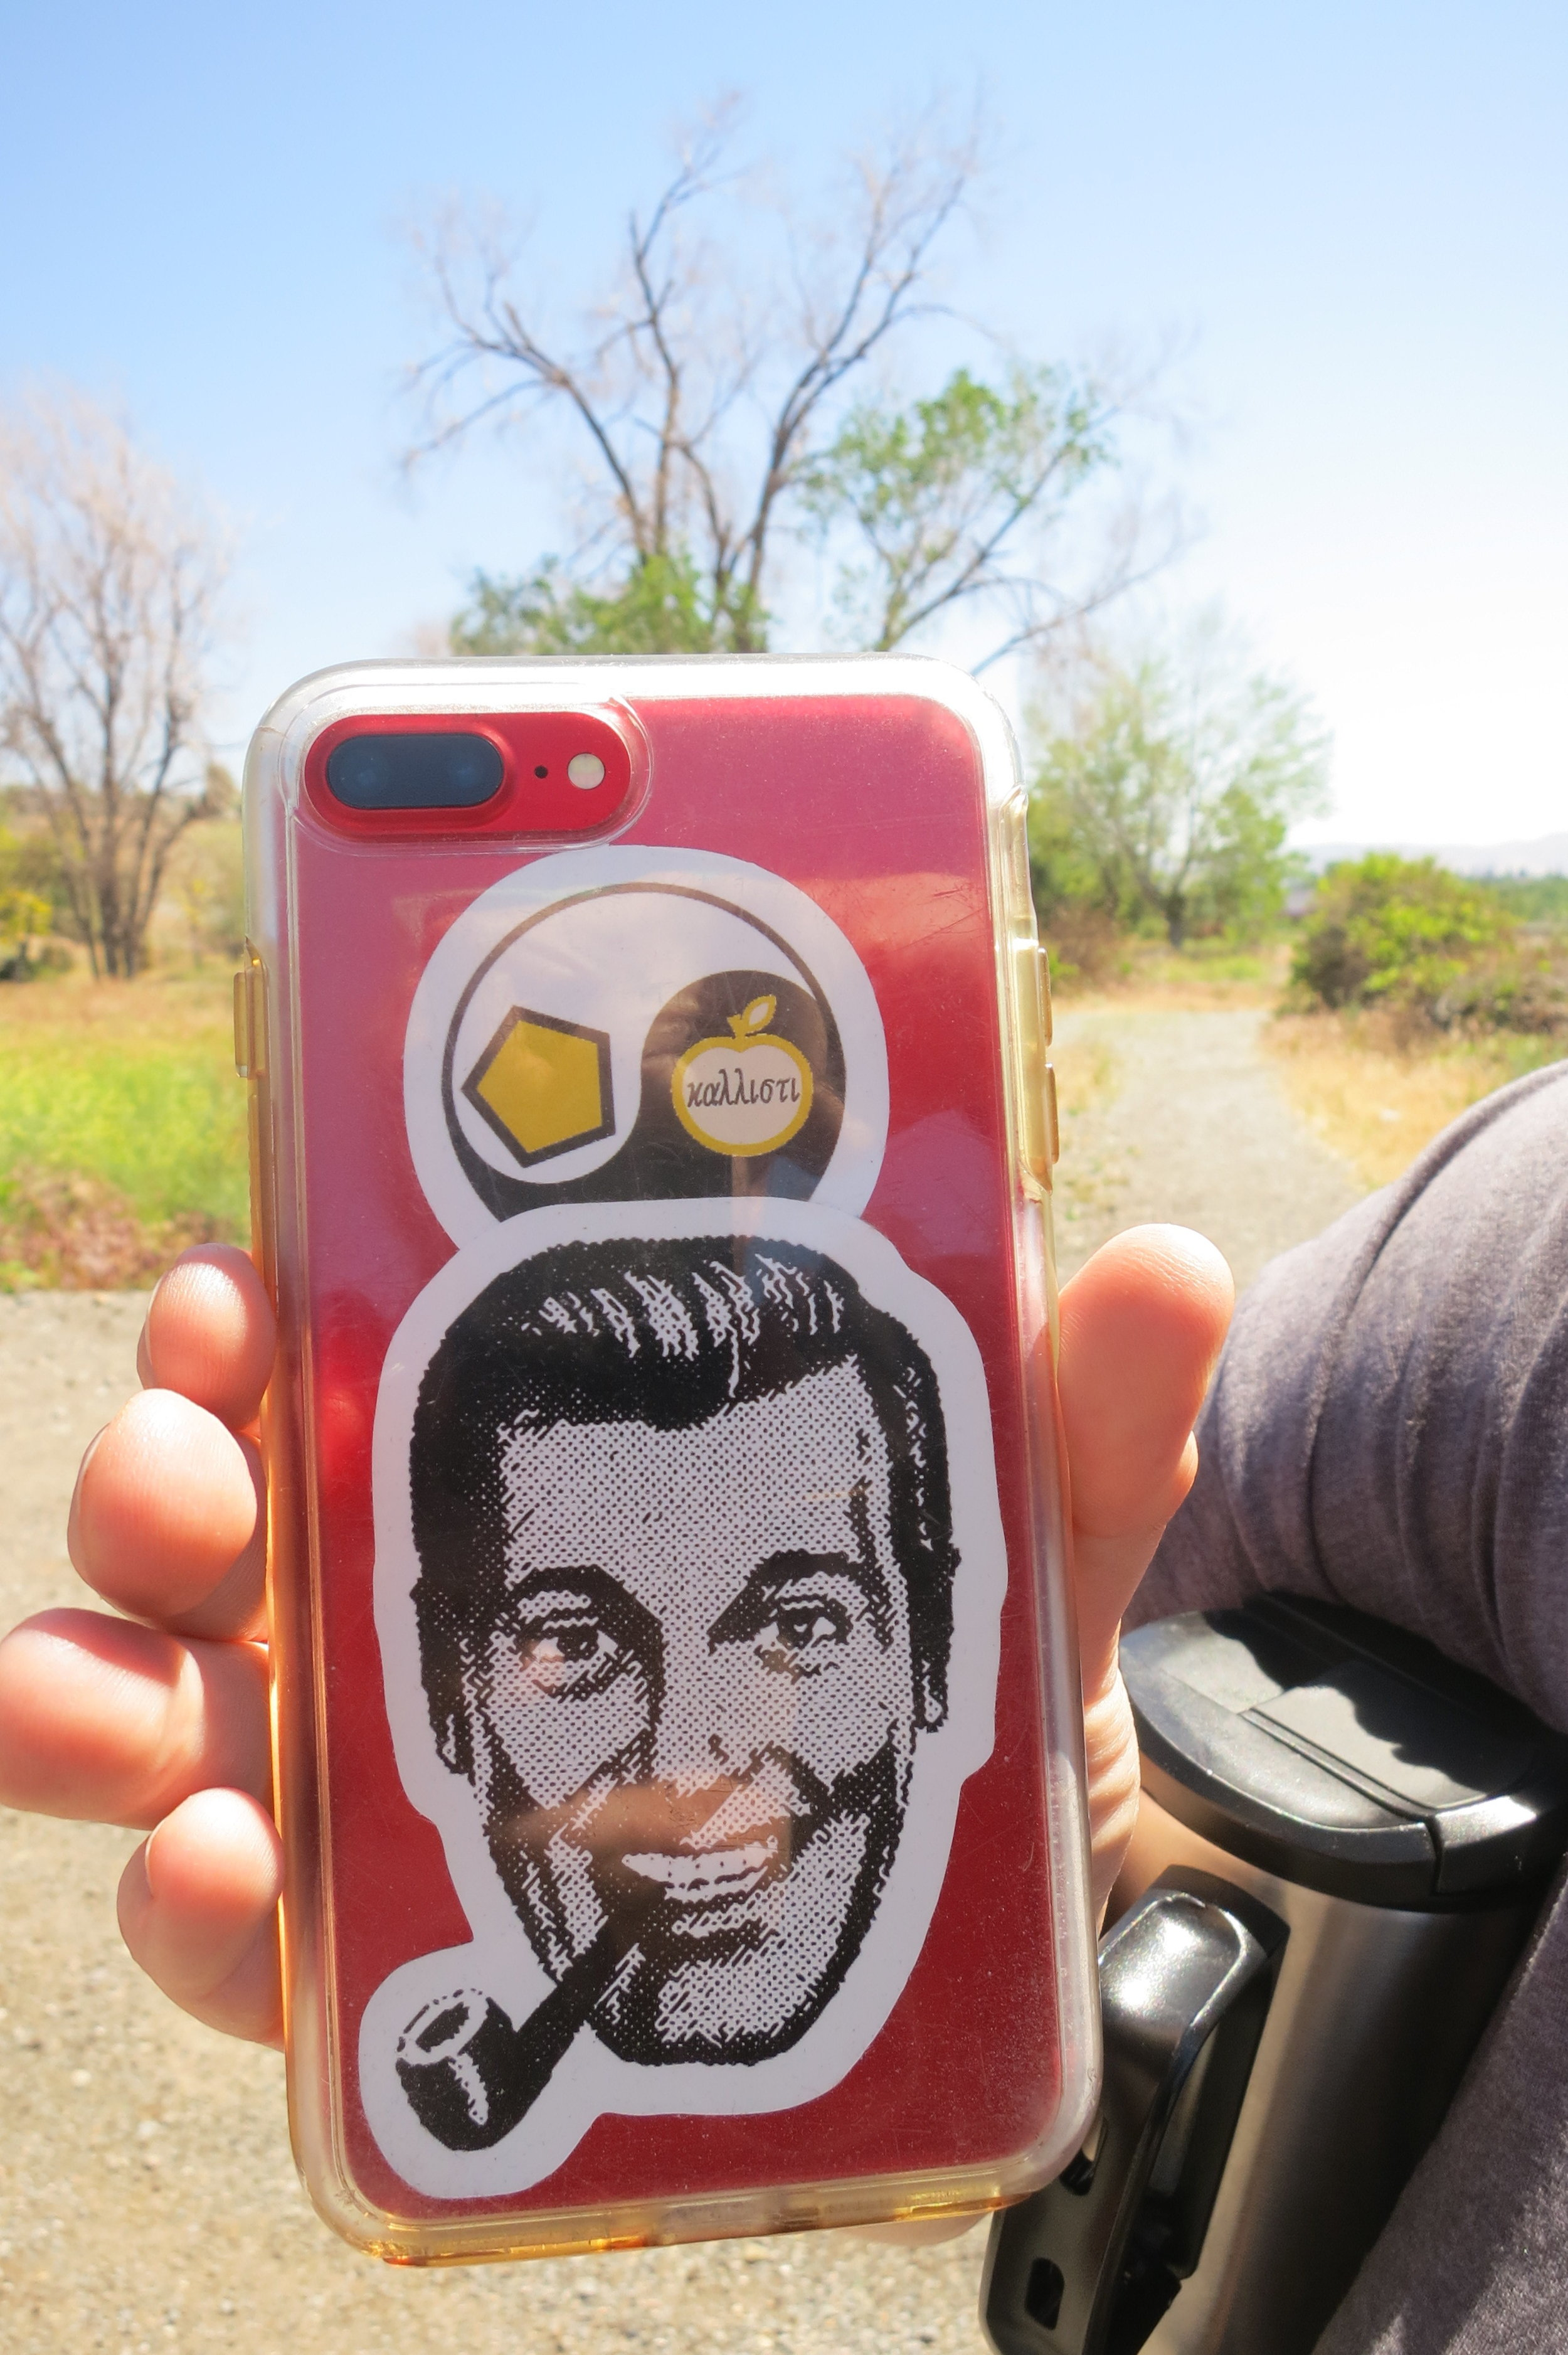 """That's J.R ""Bob"" Dobbs. Who was Bob Dobbs? He is the man who was originally clip art, but he became a man.  I am a subGenius."""